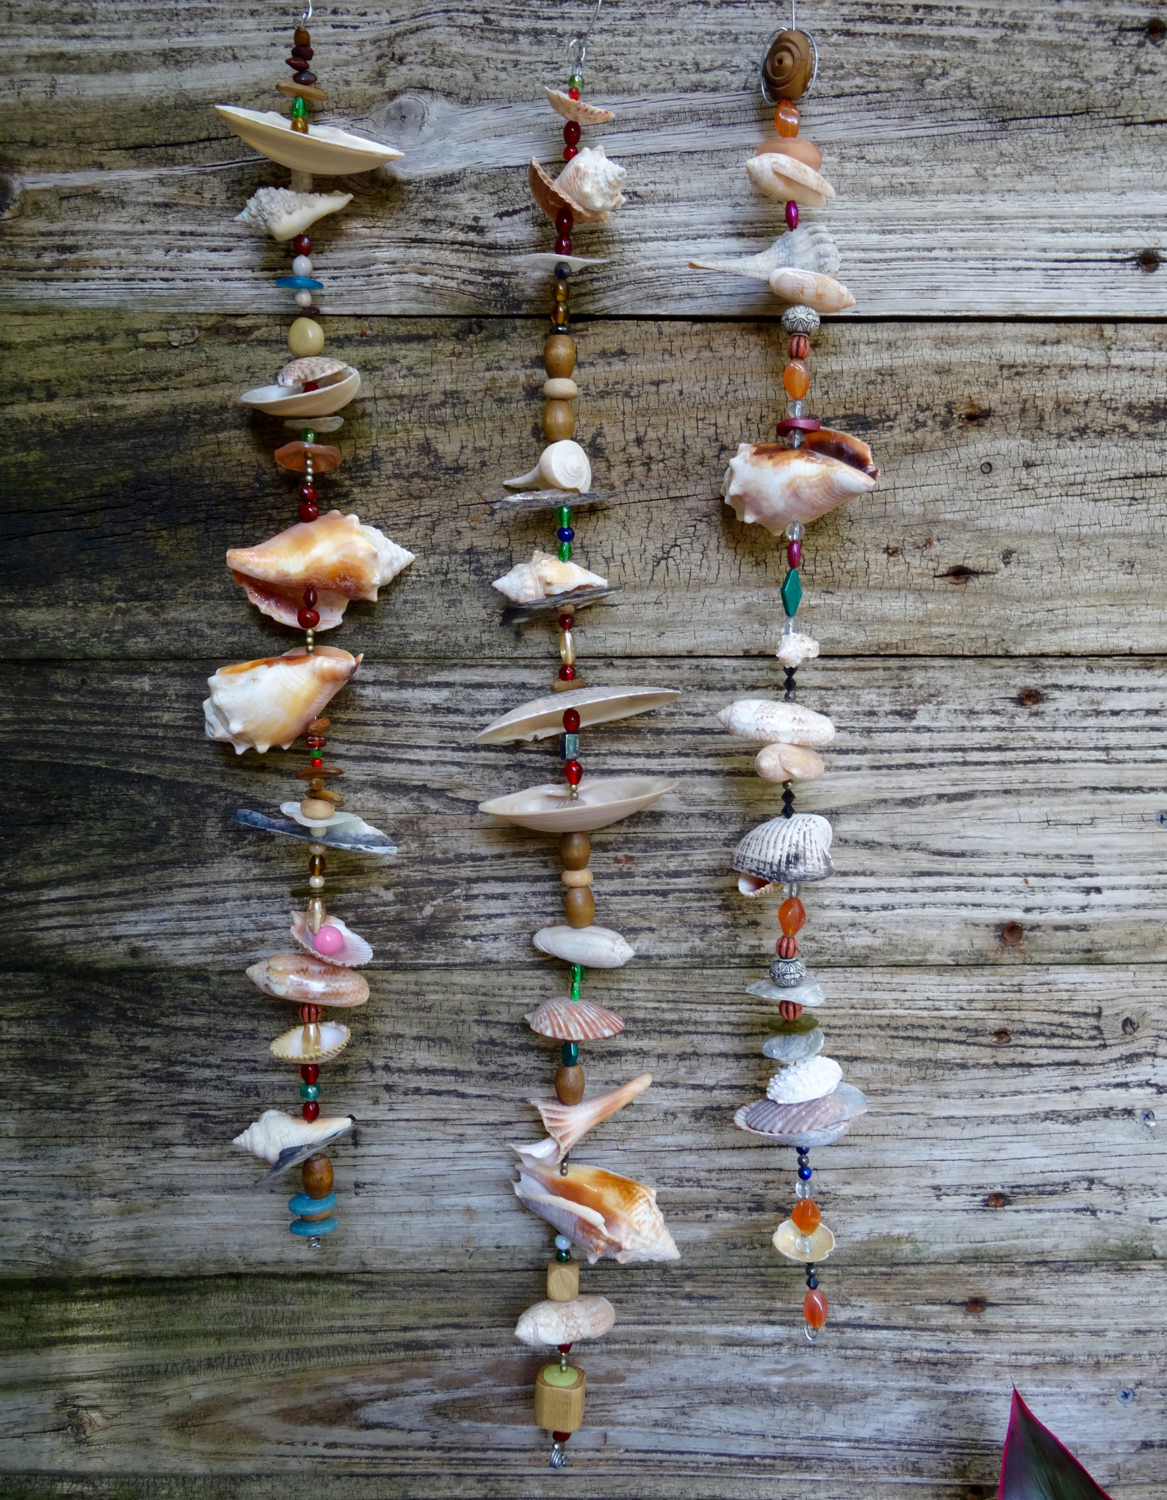 Created shell art by Debra Photography by Debra S. Walling